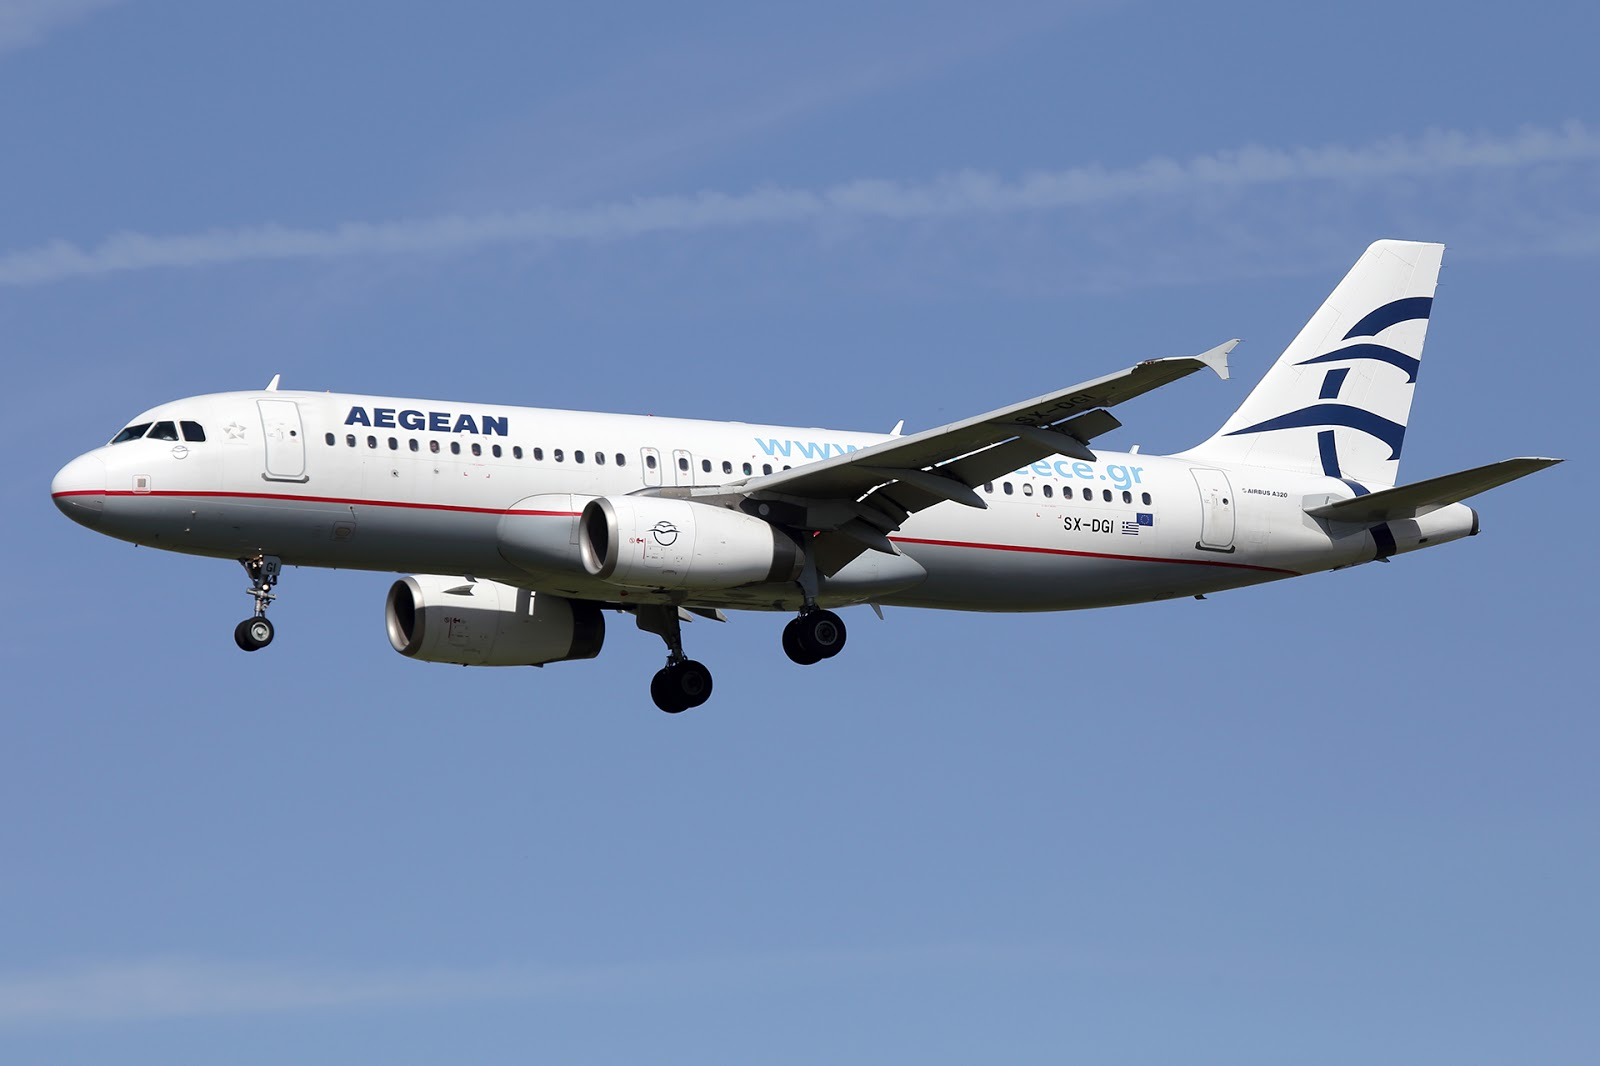 Aegean airlines launched two new services from rhodes rho this week all operated using the airline s 174 seat a320s starting on friday 22 may with new